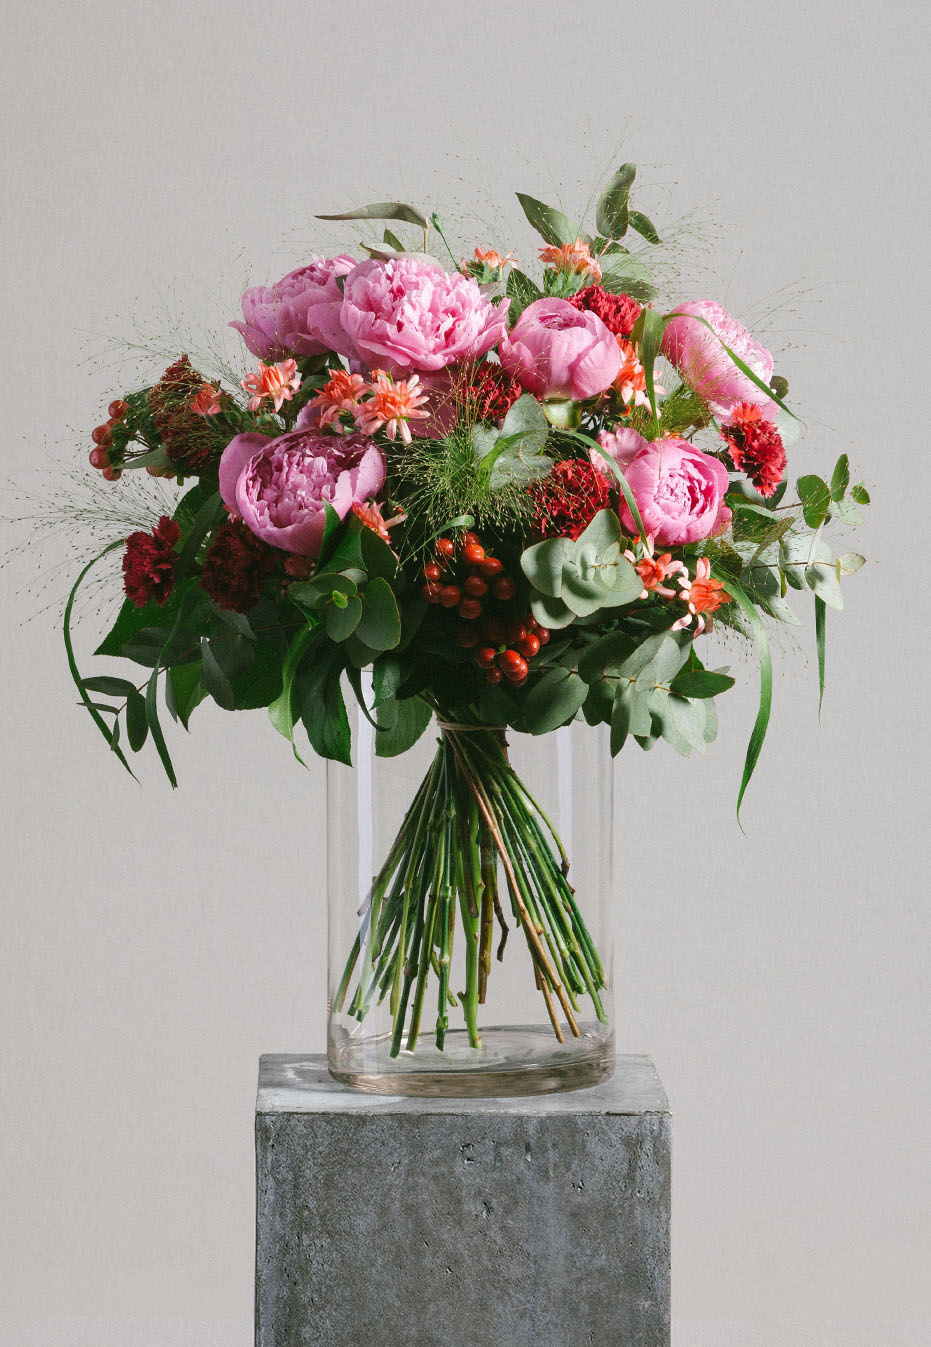 flower bouquet of peony and carnation by flannel flowers